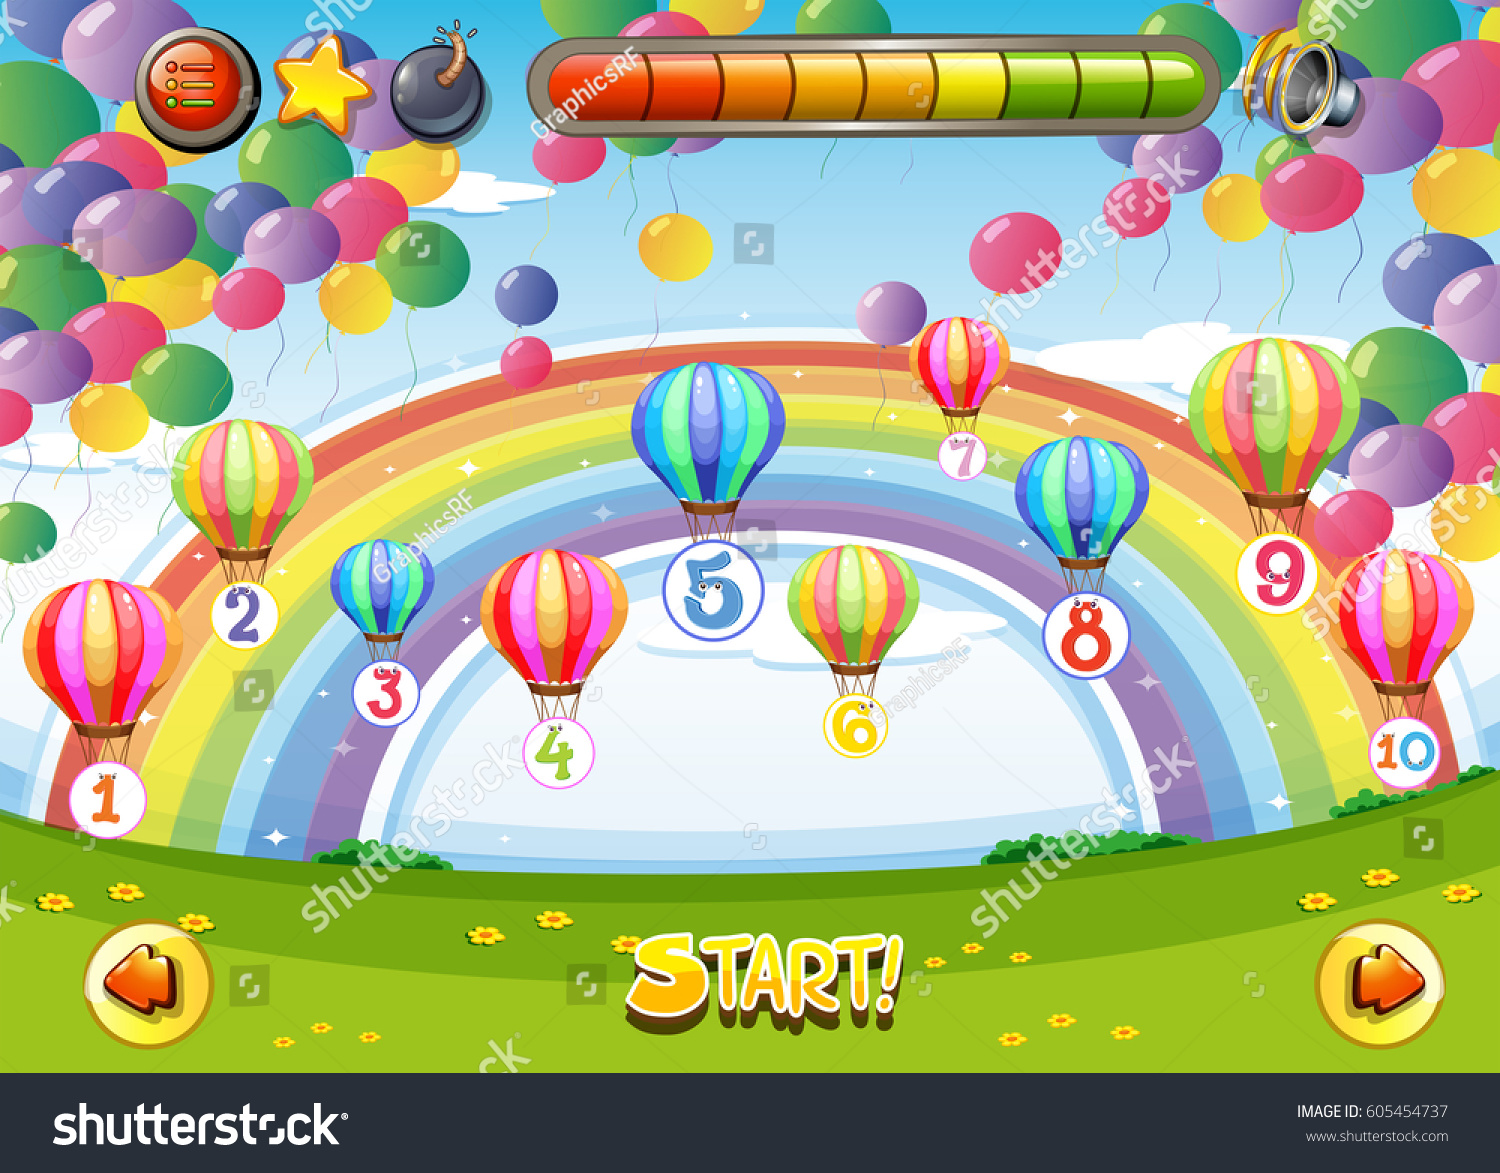 Game Template Balloons Numbers Illustration Stock Vector